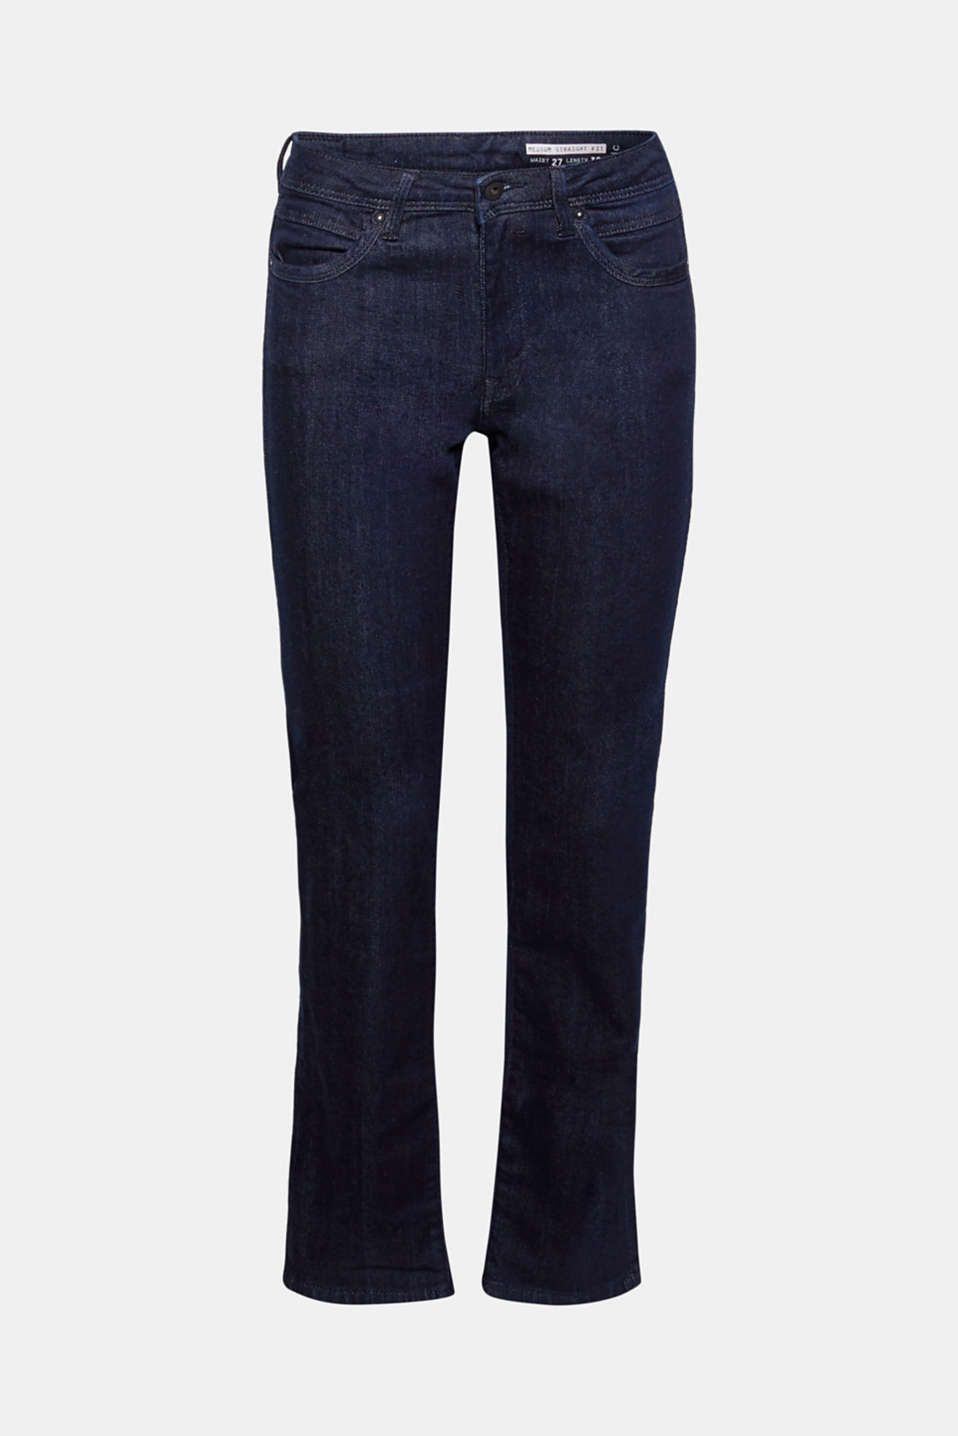 Definitive denim: these stretch jeans with a dark garment wash are a particularly versatile basic for all occasions!